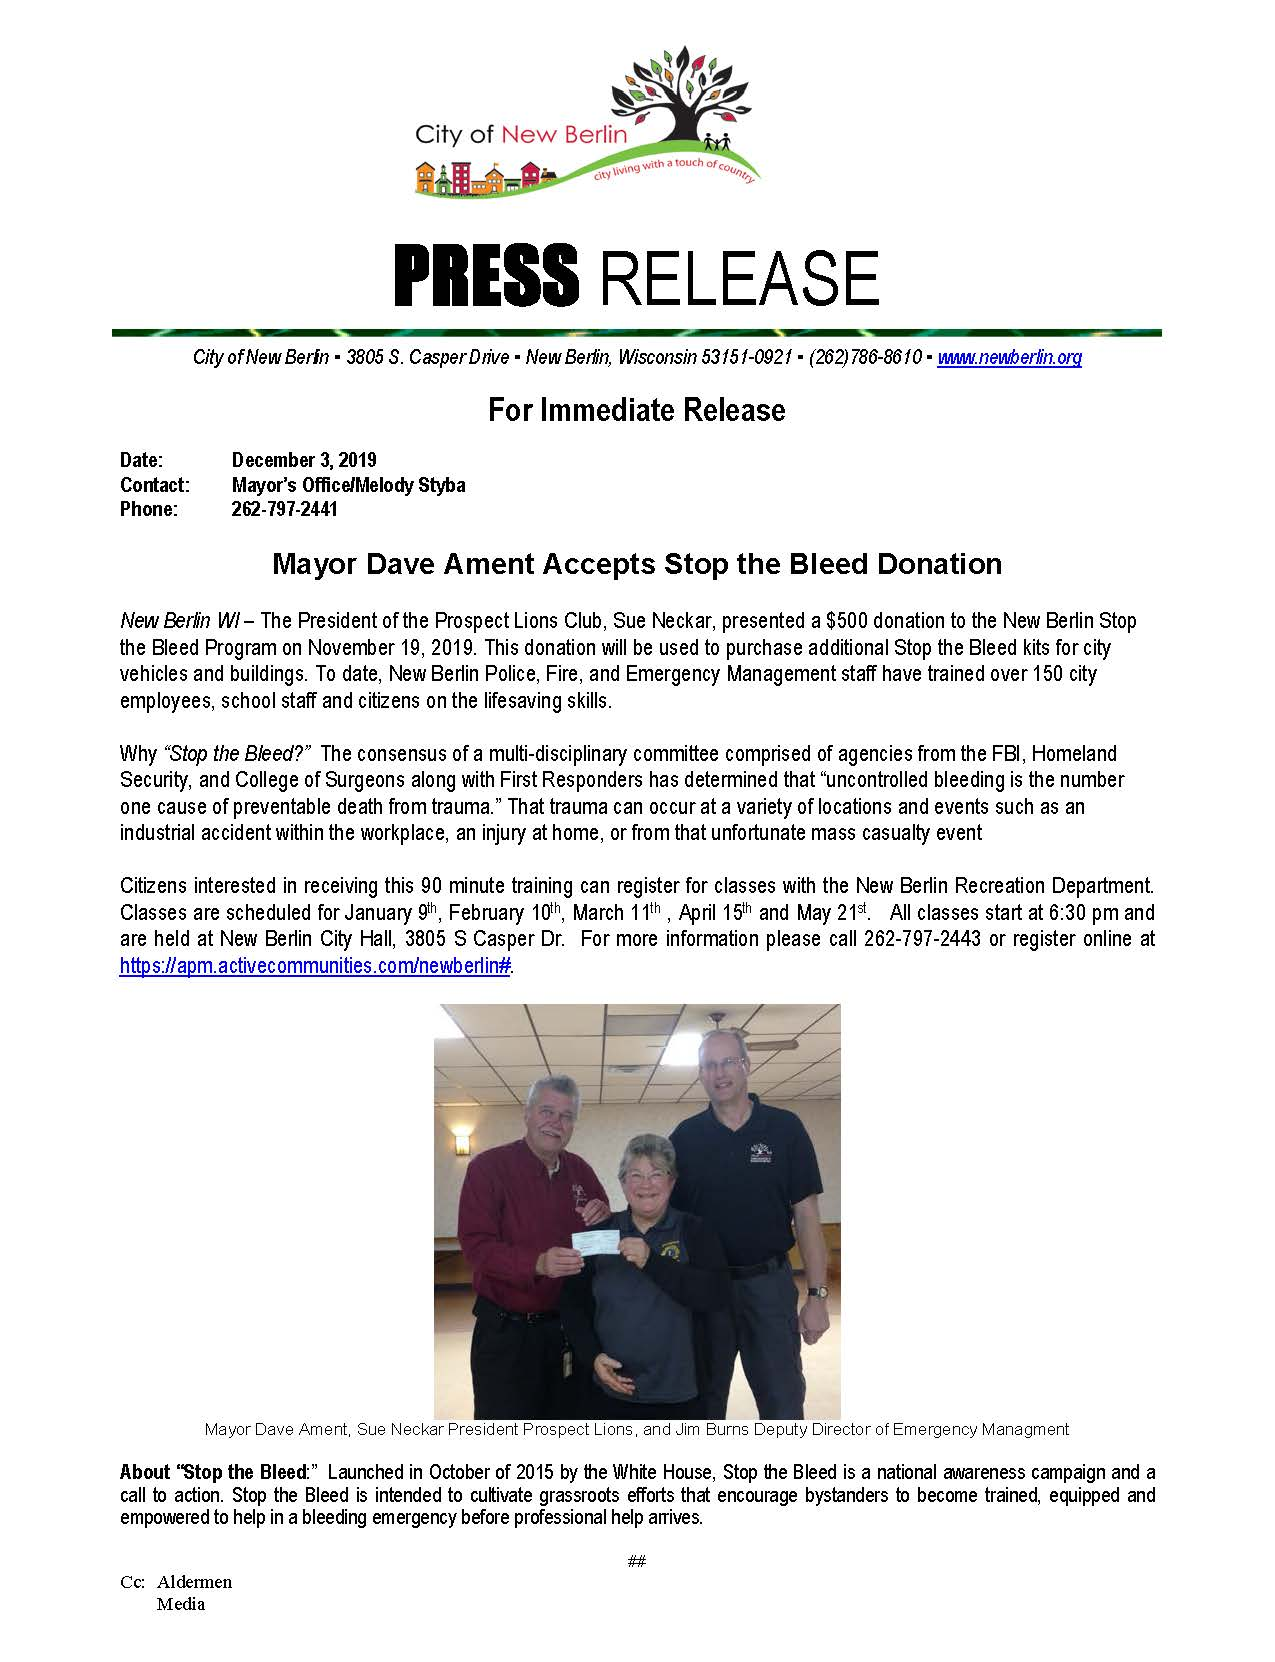 Press Release - Stop the Bleed Prospect Lions